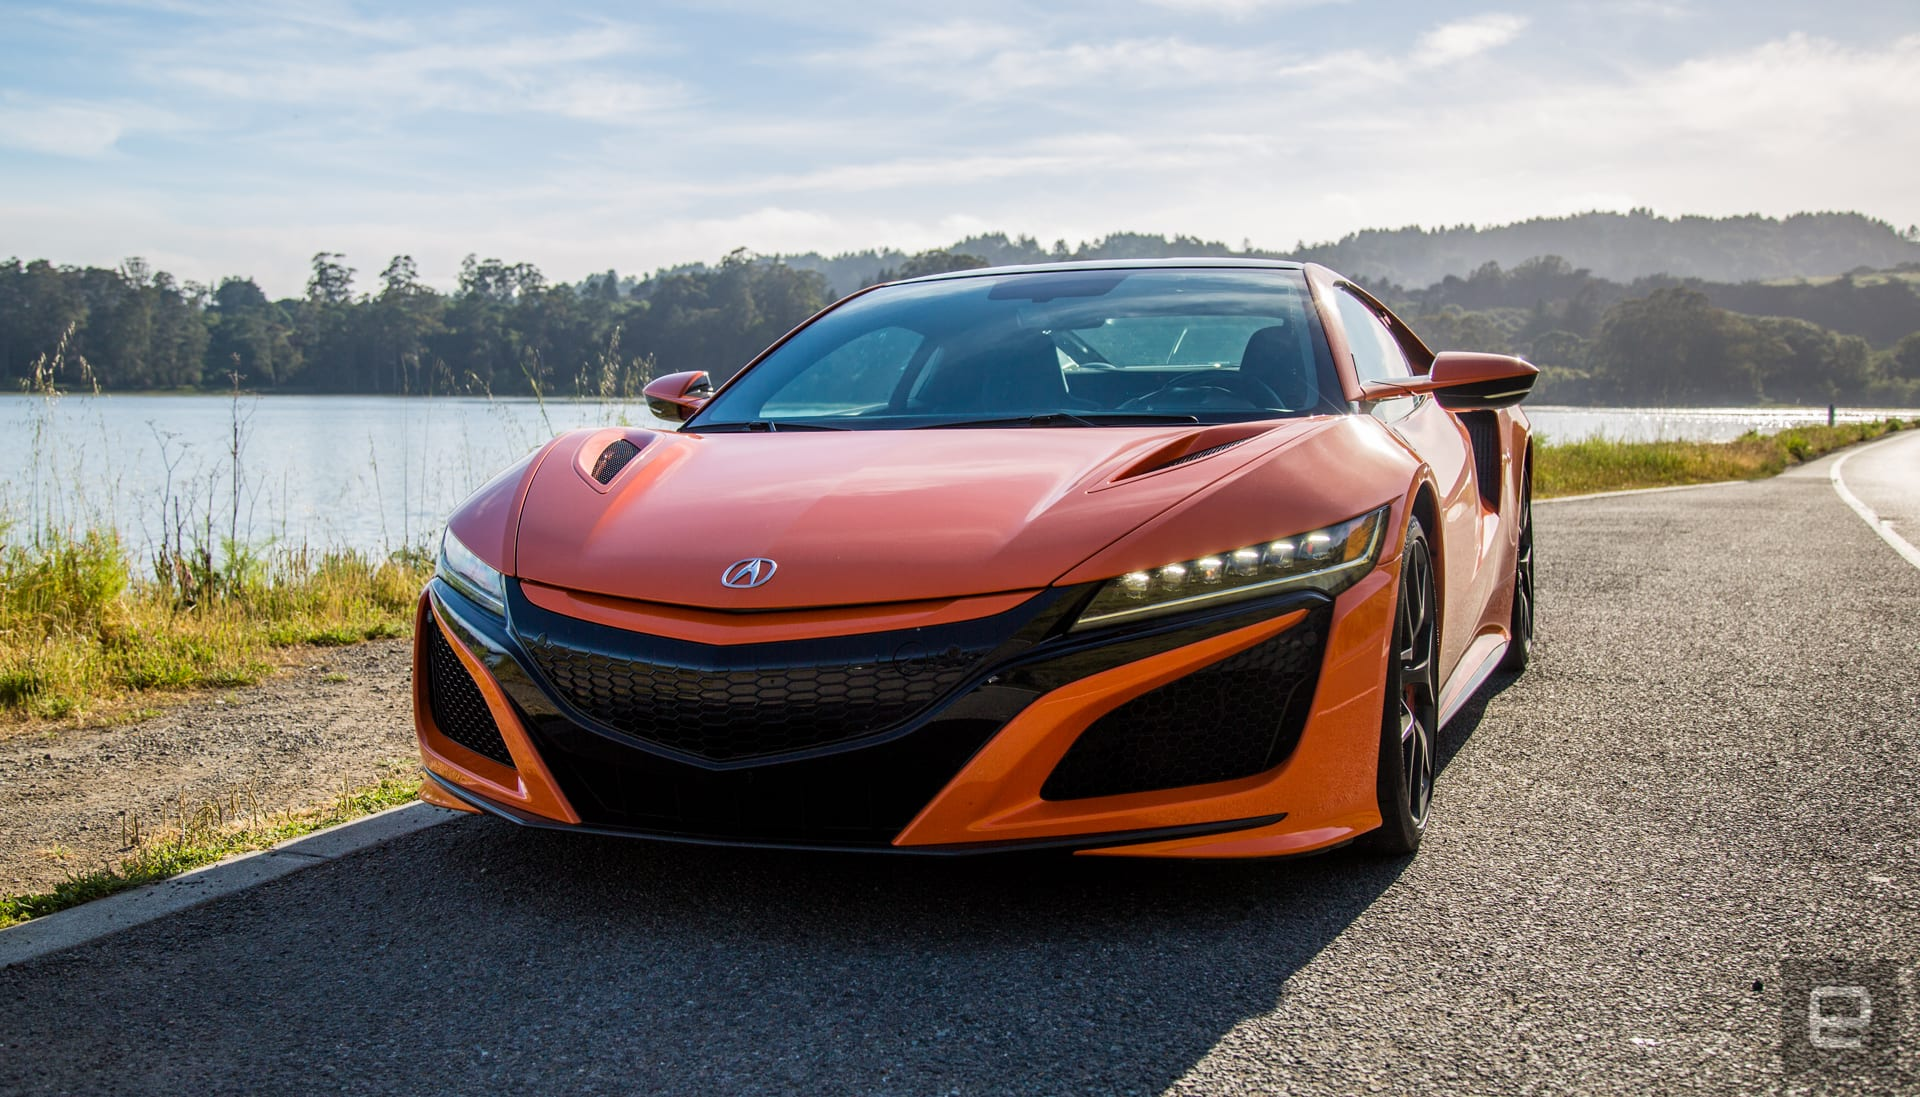 2019 Acura NSX review